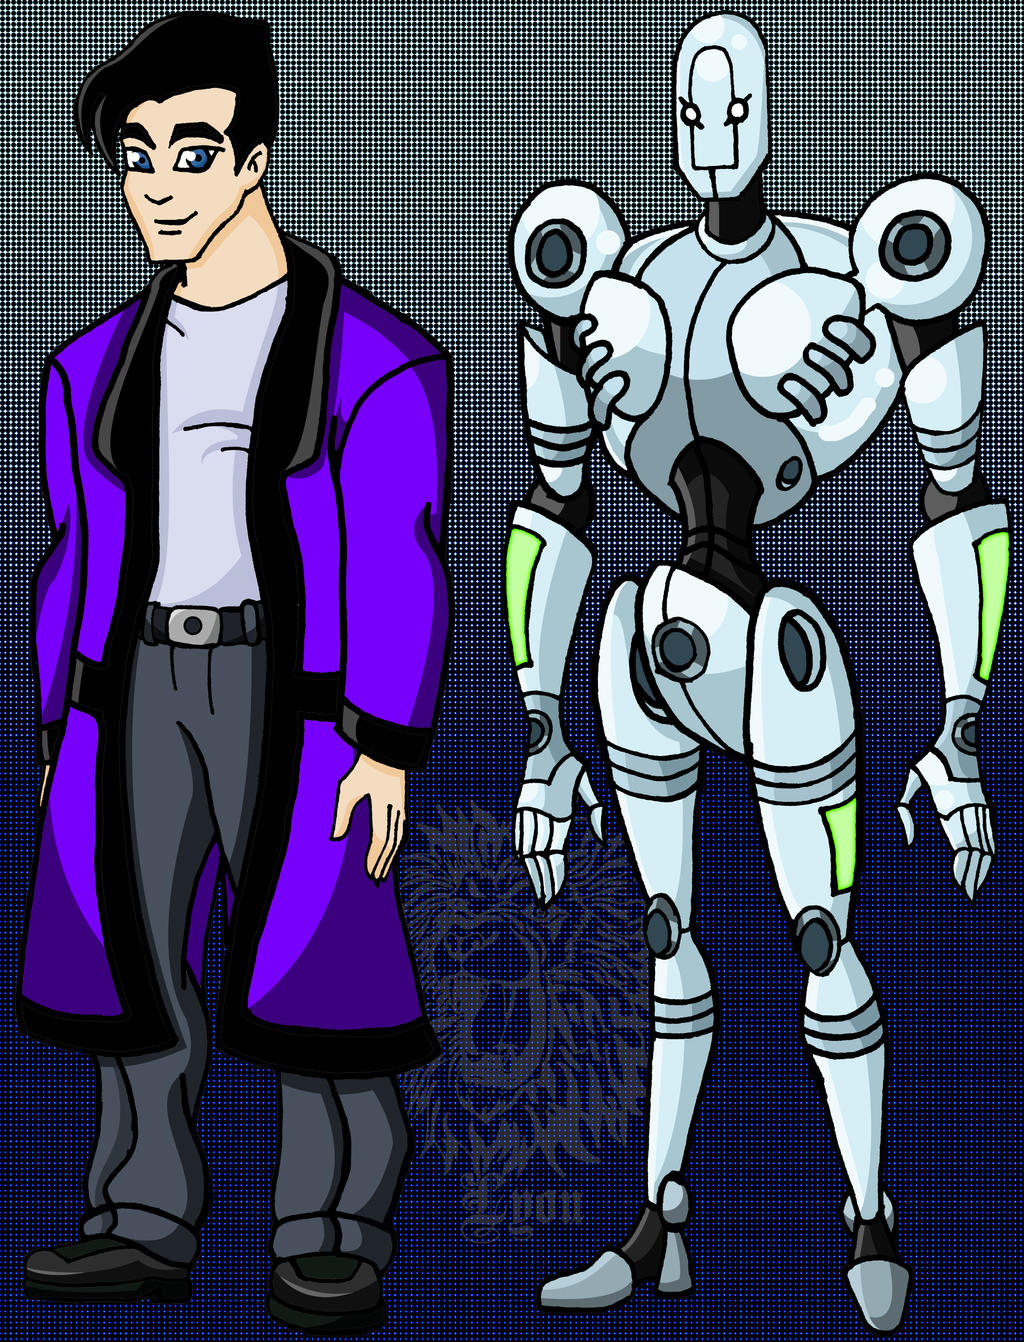 zeta project The zeta project is an american science fiction animated television series produced by warner.